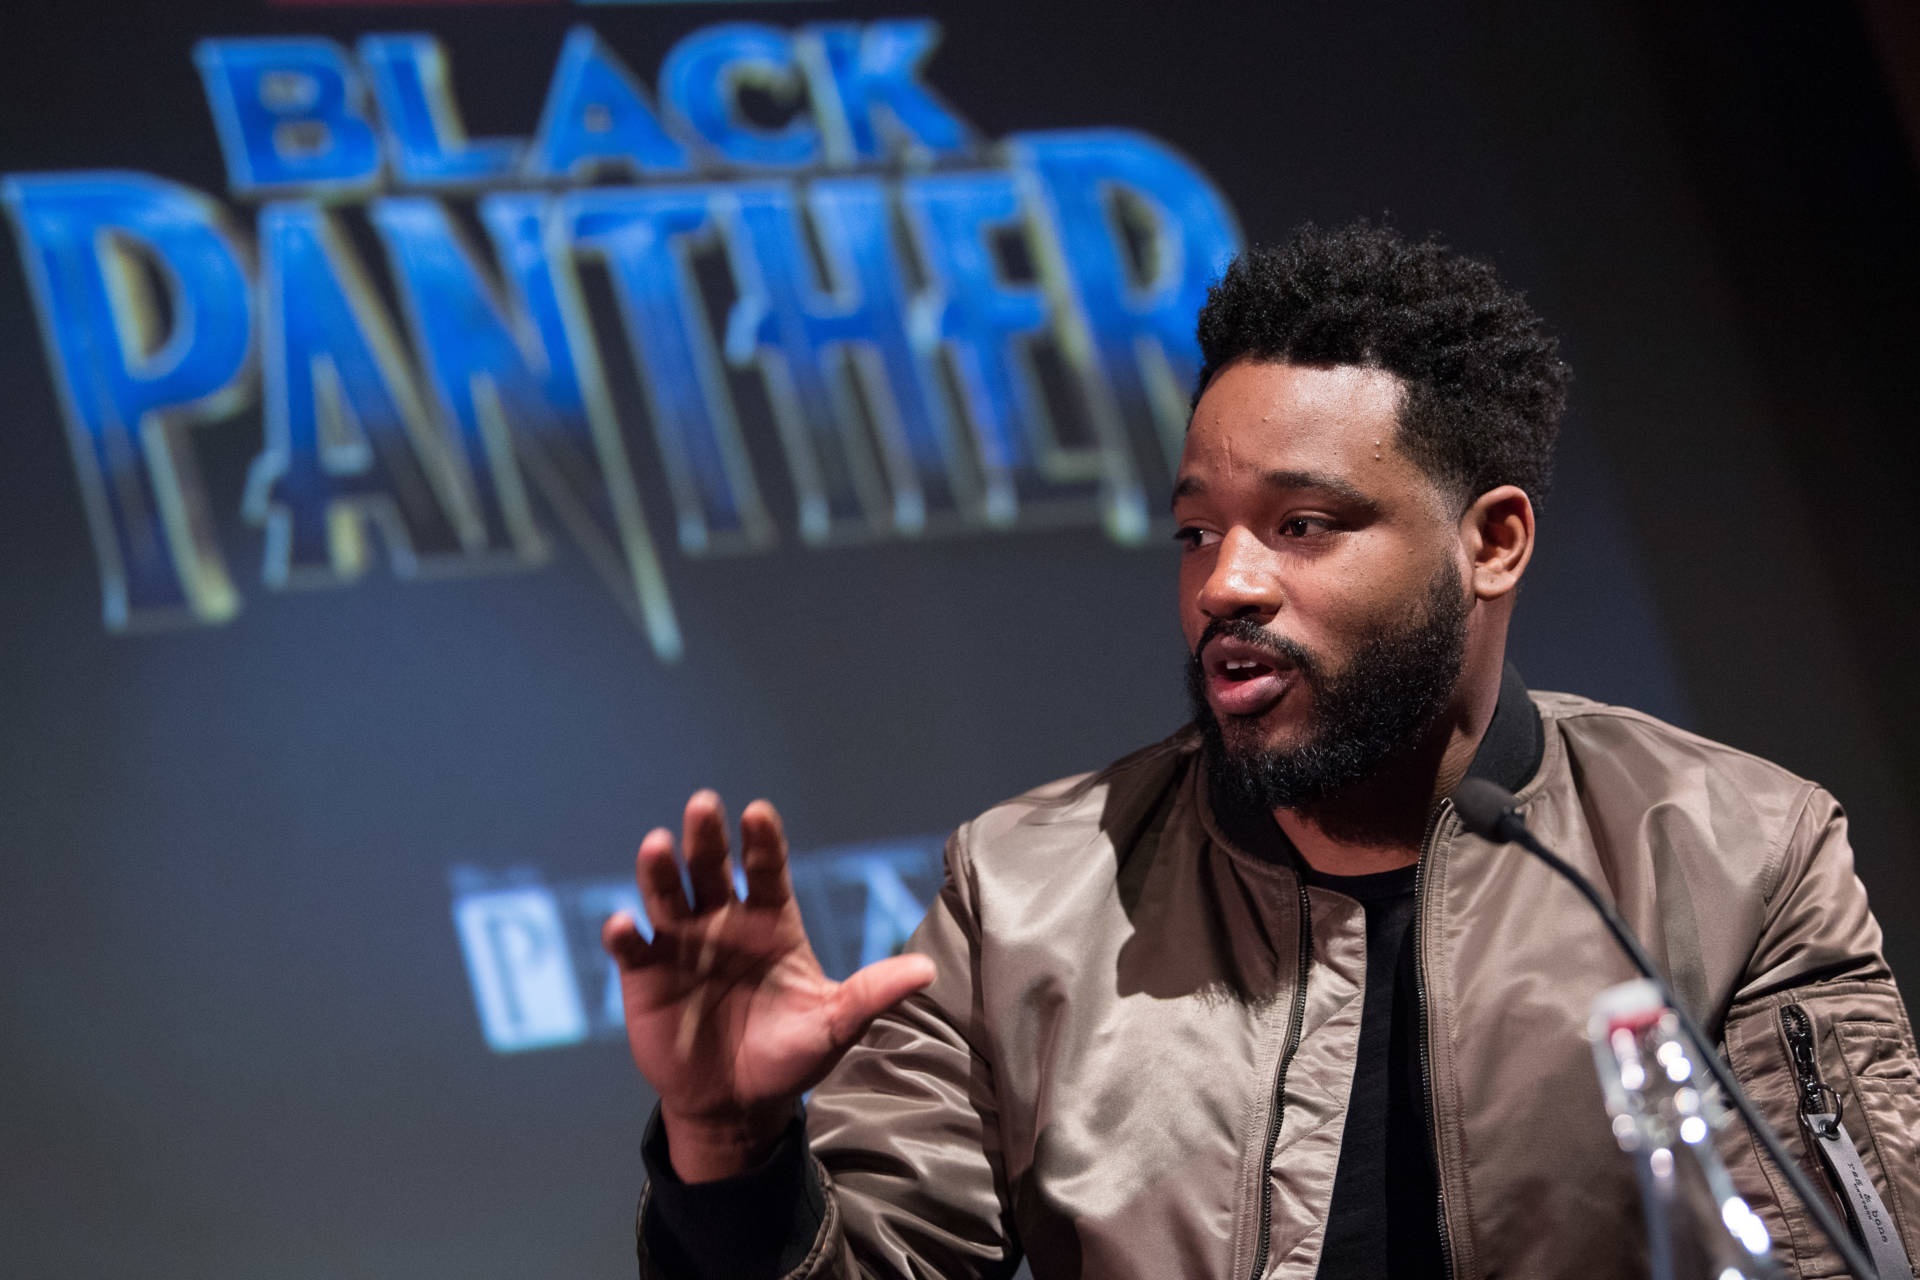 """Oakland-born Director Ryan Coogler attends the """"Black Panther"""" BFI preview screening held at BFI Southbank on Feb. 9, 2018, in London, England.  Jeff Spicer/Getty Images"""